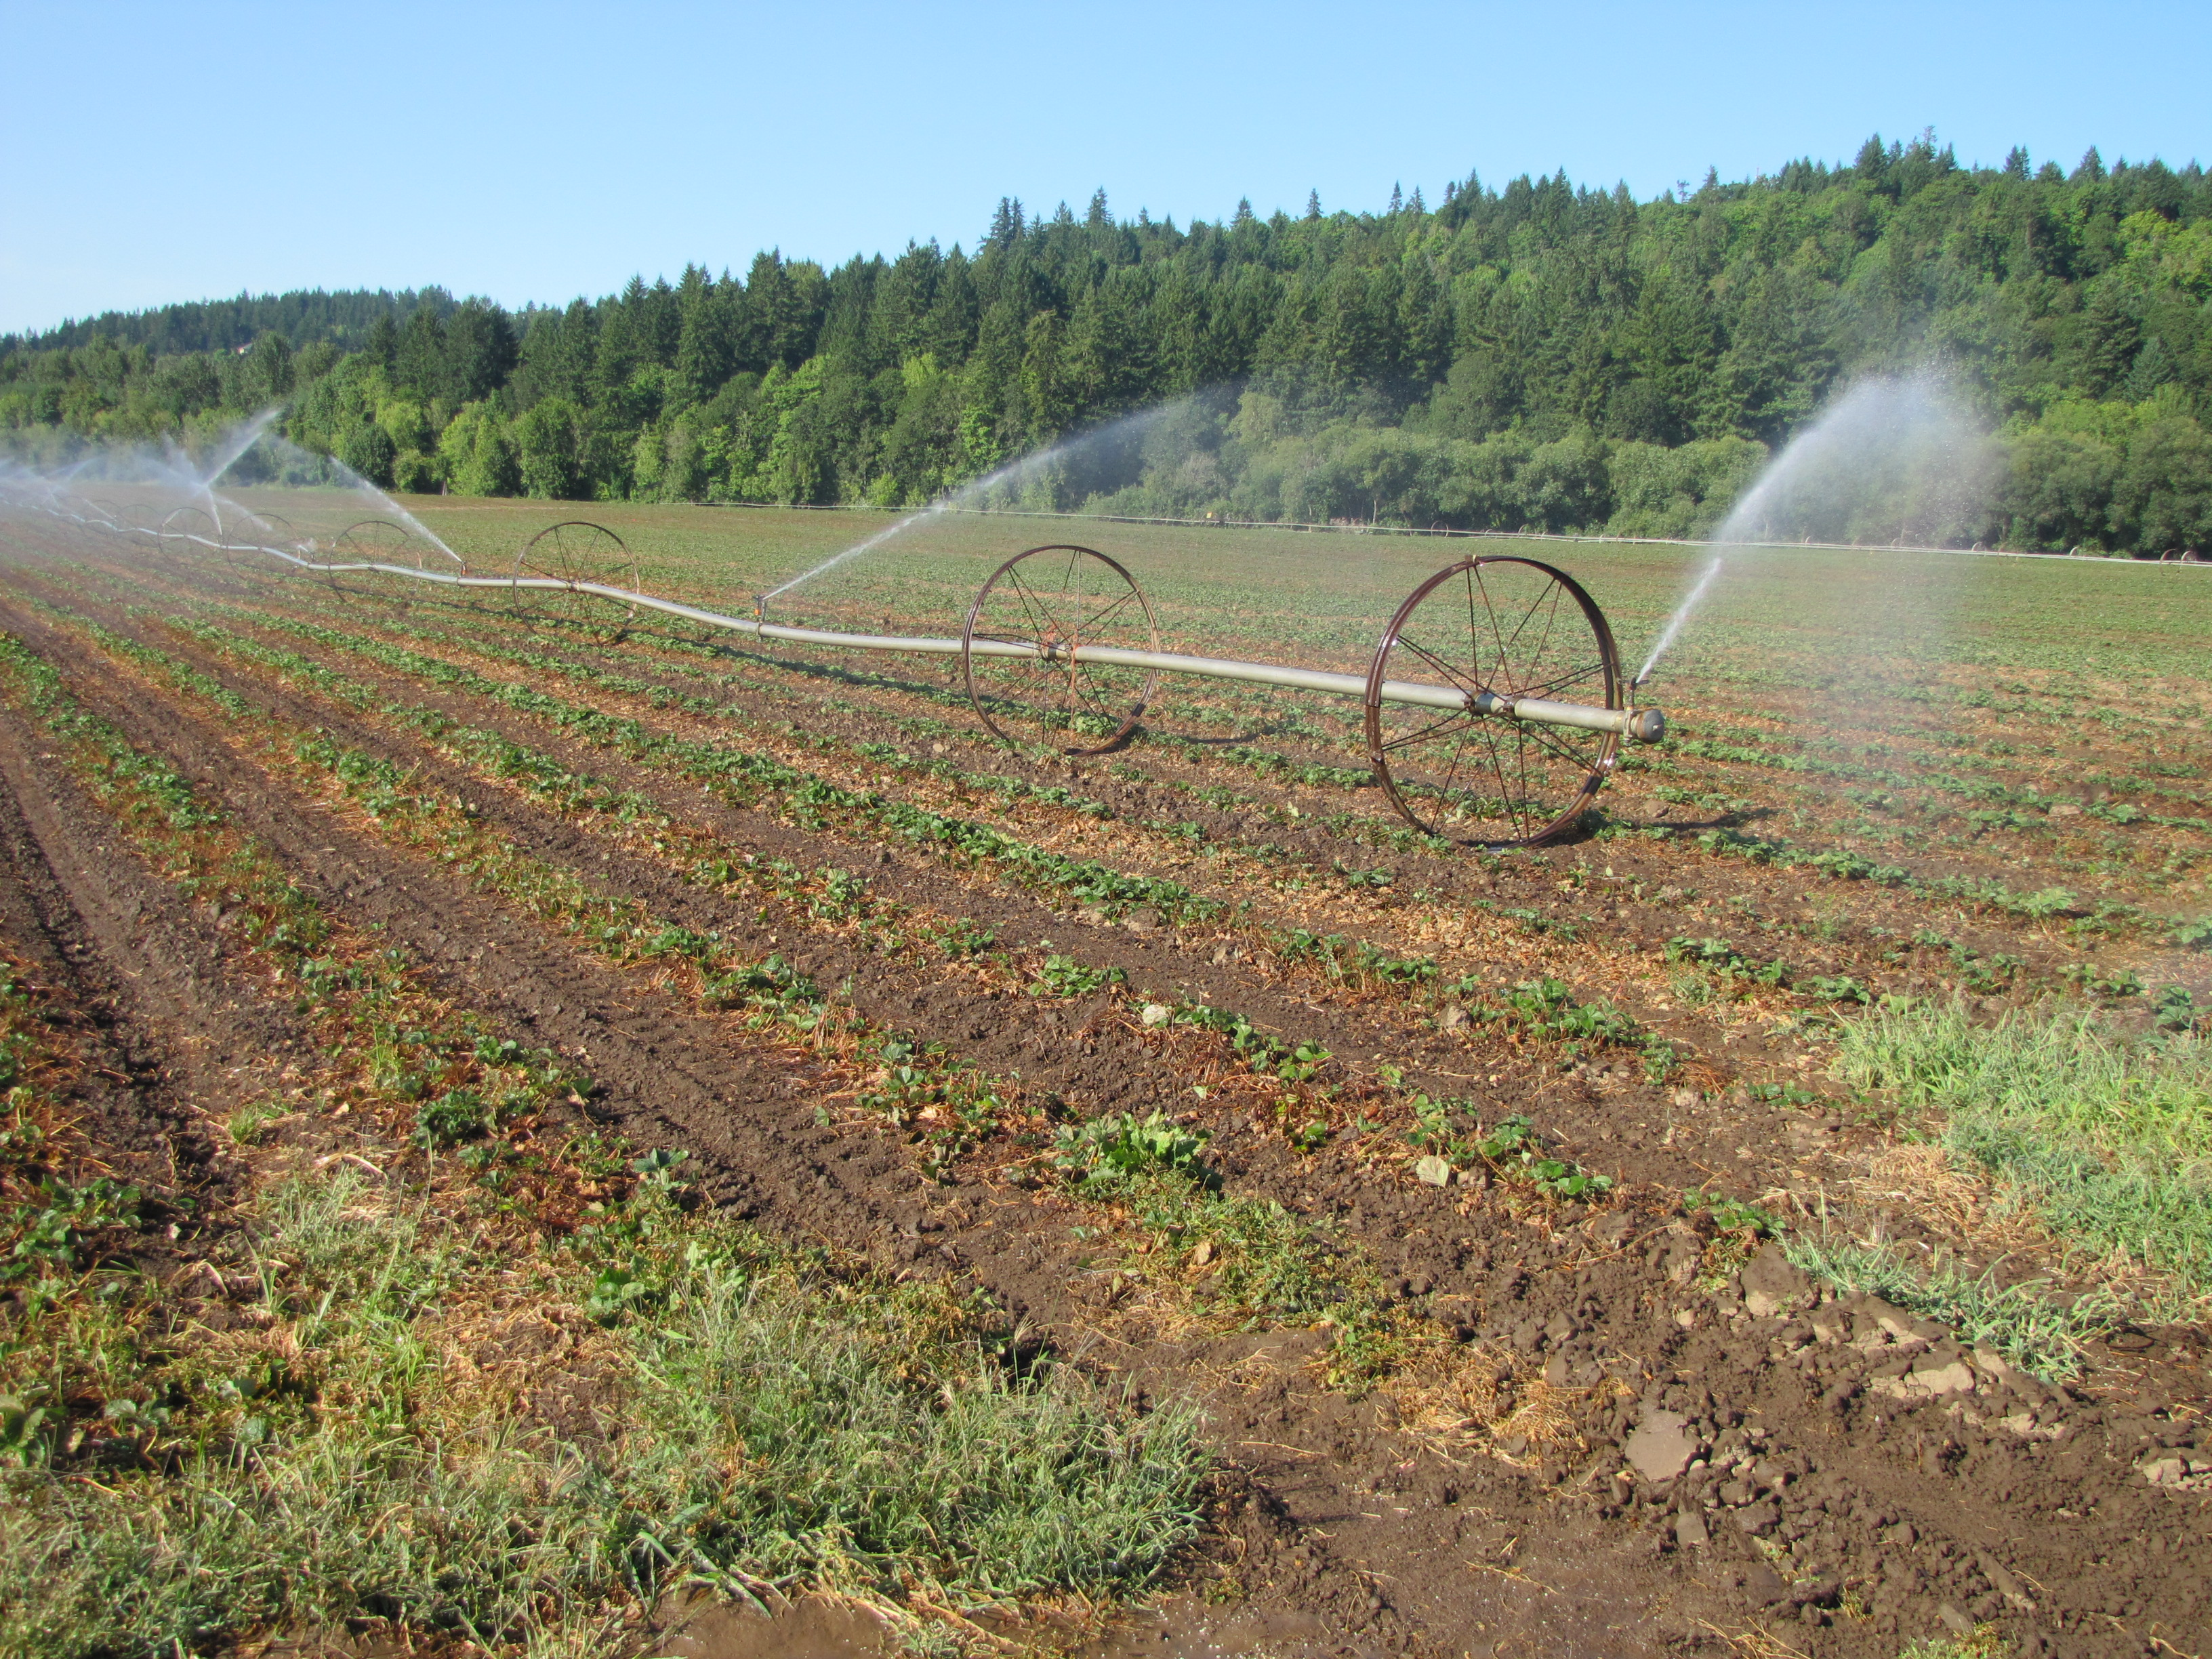 Figure 13. Irrigating a June-bearing strawberry field after renovation to facilitate nitrogen fertilizer uptake and good growth prior to flower bud development.